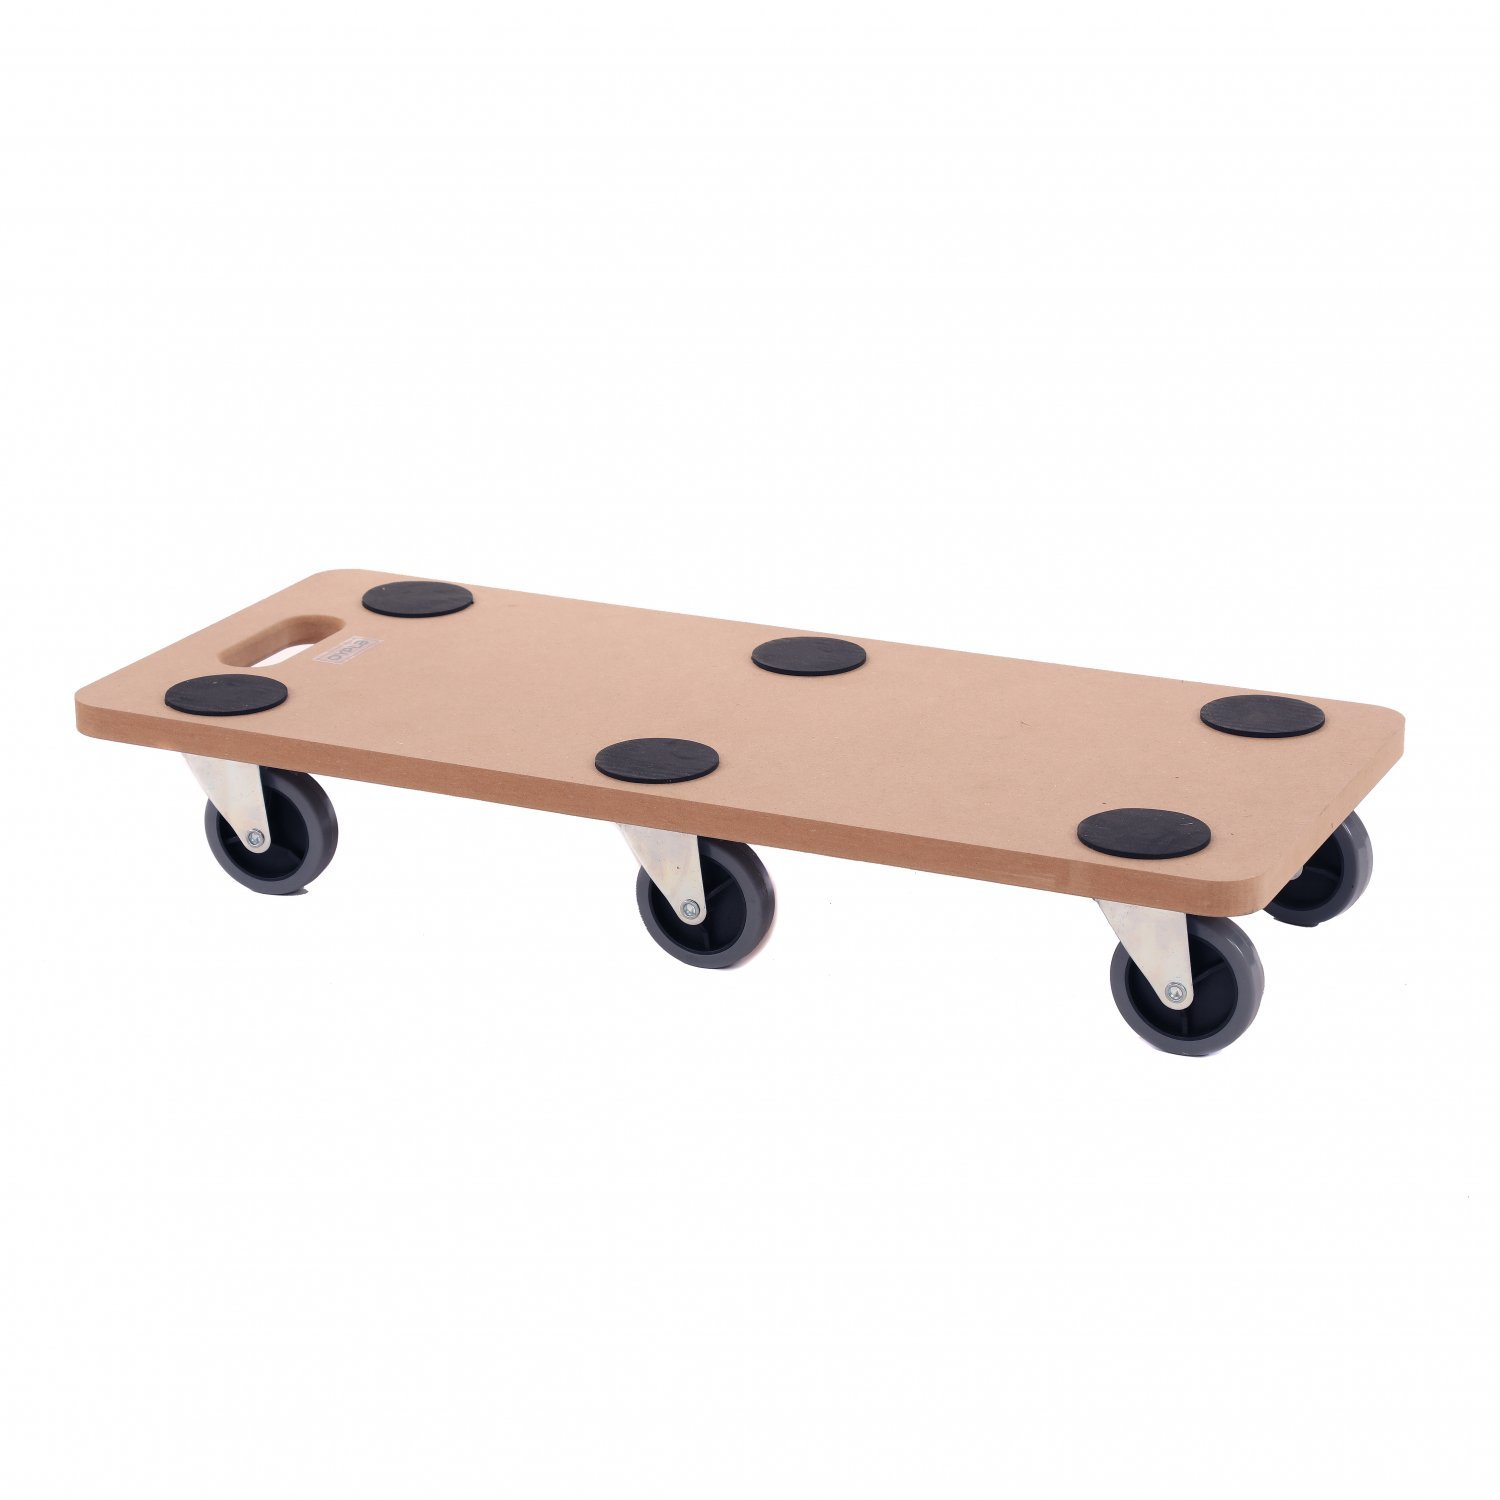 300kg Wheeled Platform Dolly Furniture Transport Roller Trolley 17 99 Oypla Stocking The Very Best In Toys Electrical Furniture Homeware Garden Gifts And Much More